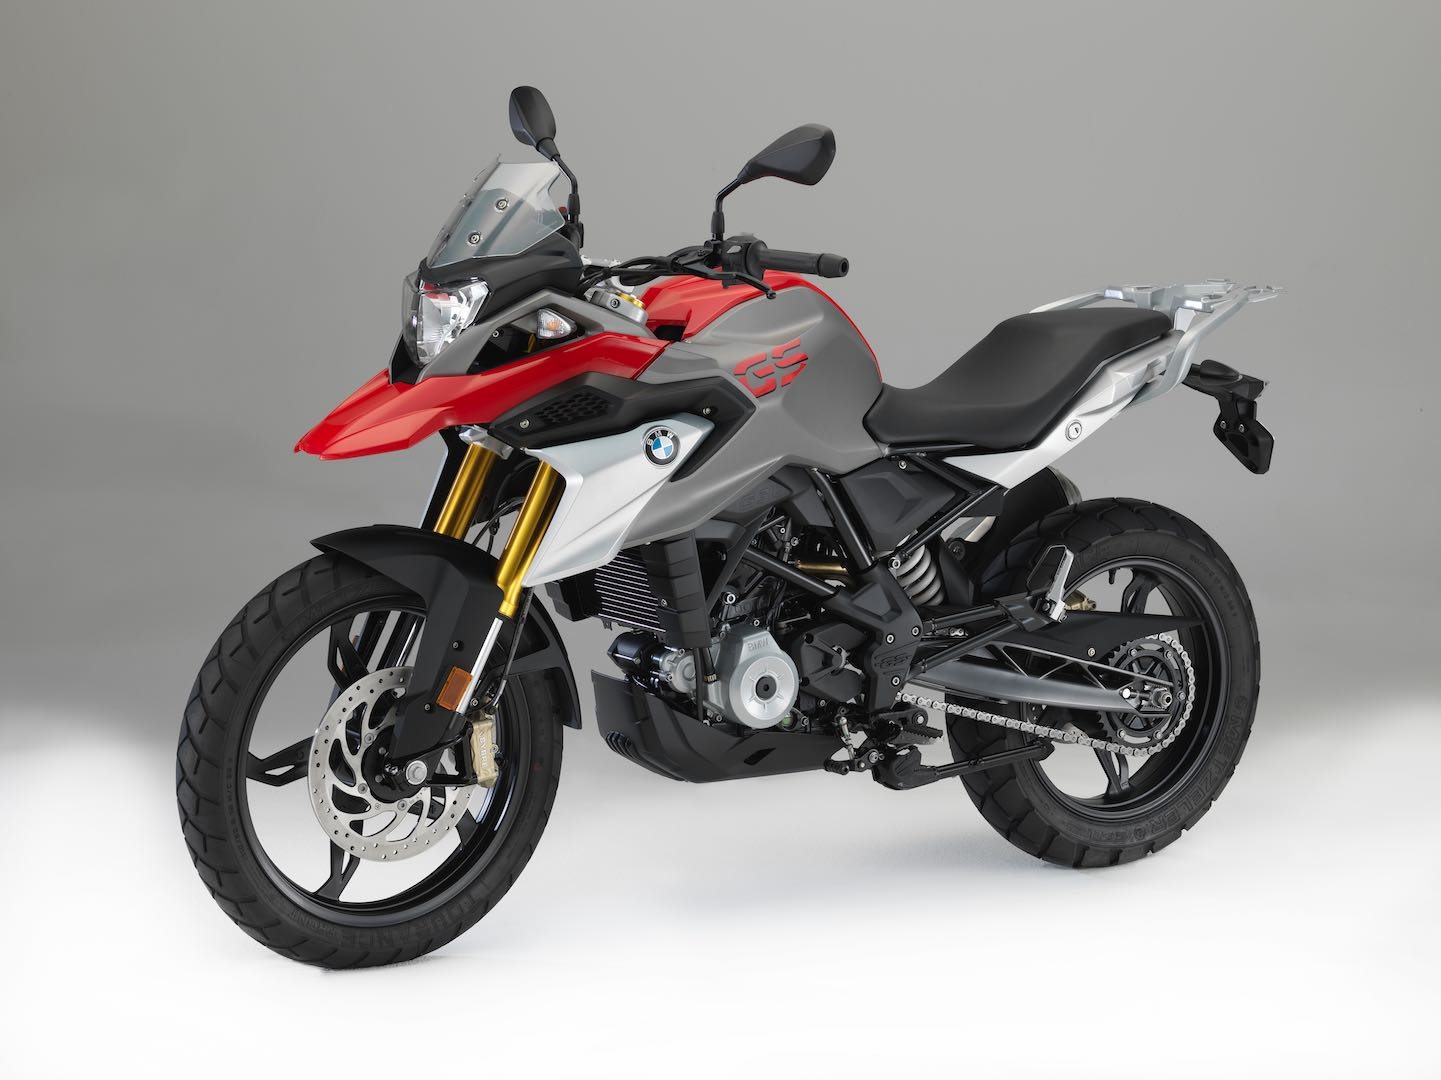 2017 BMW G 310 GS First Look | 7 Fast Facts